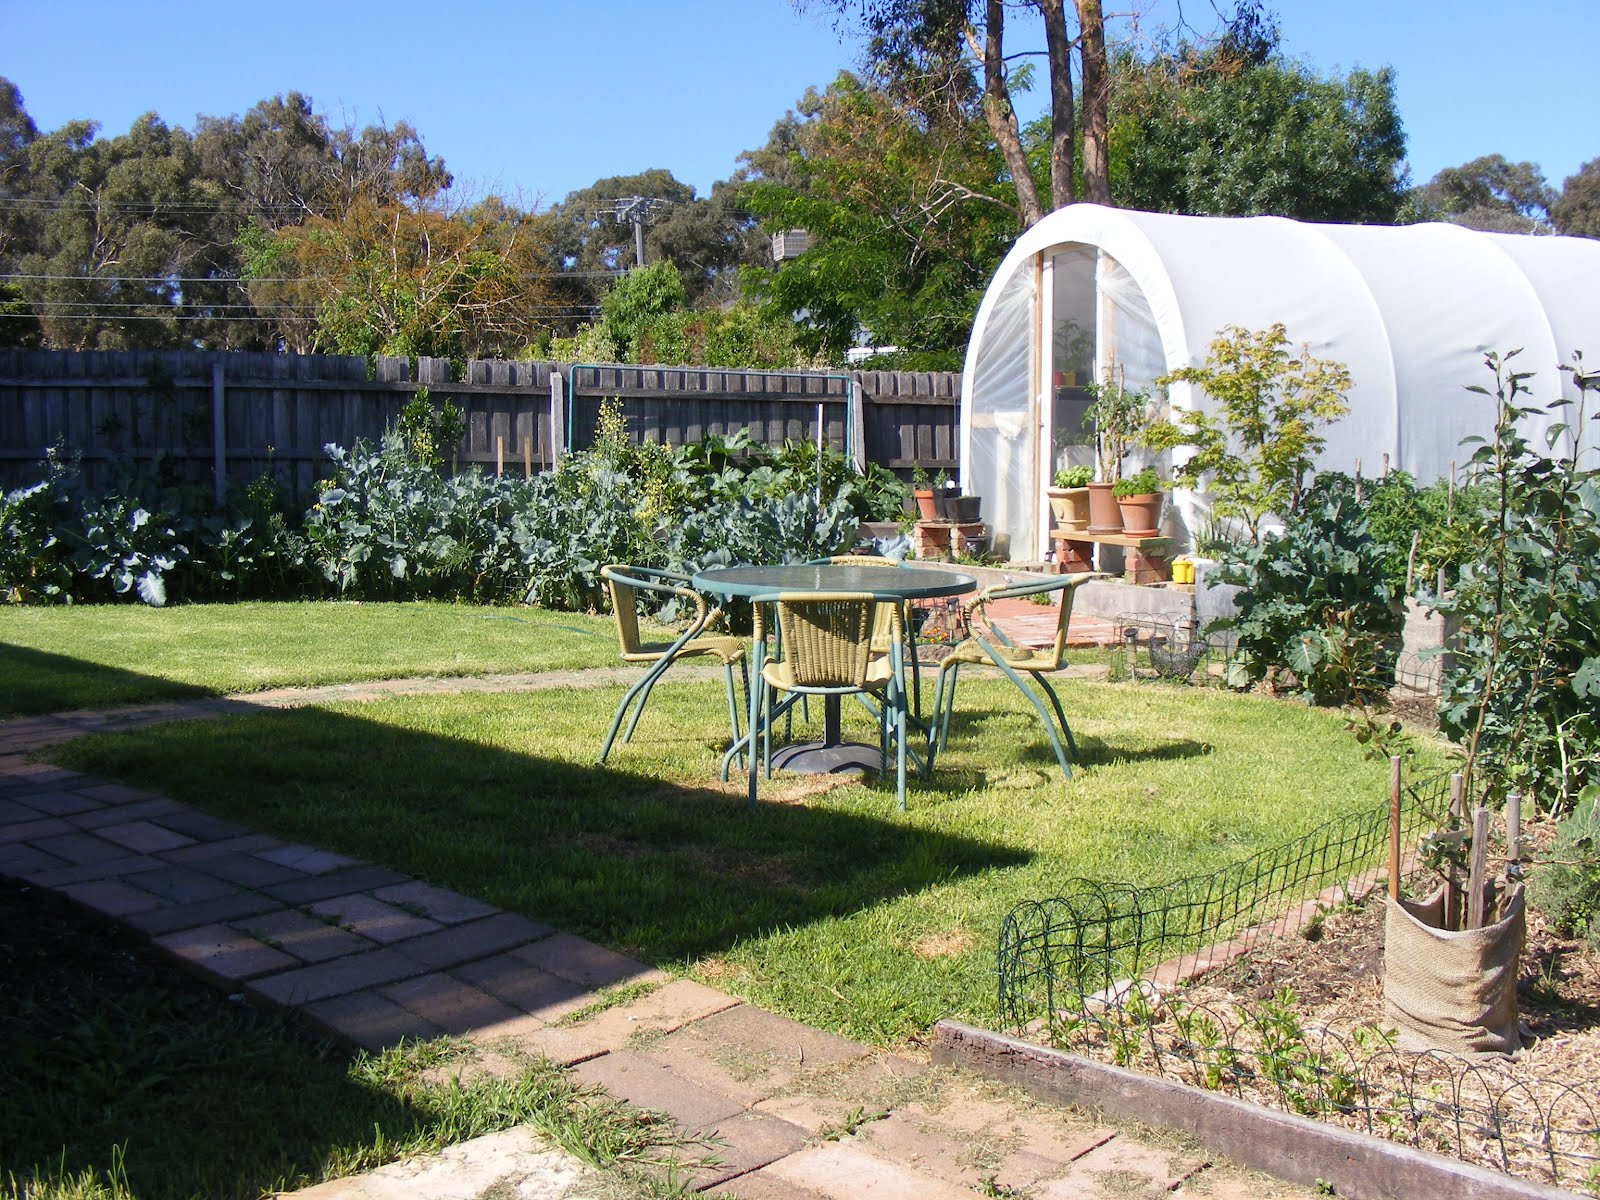 Self Sustainable Backyard : Backyard Self Sufficiency Total Self Sufficiency And